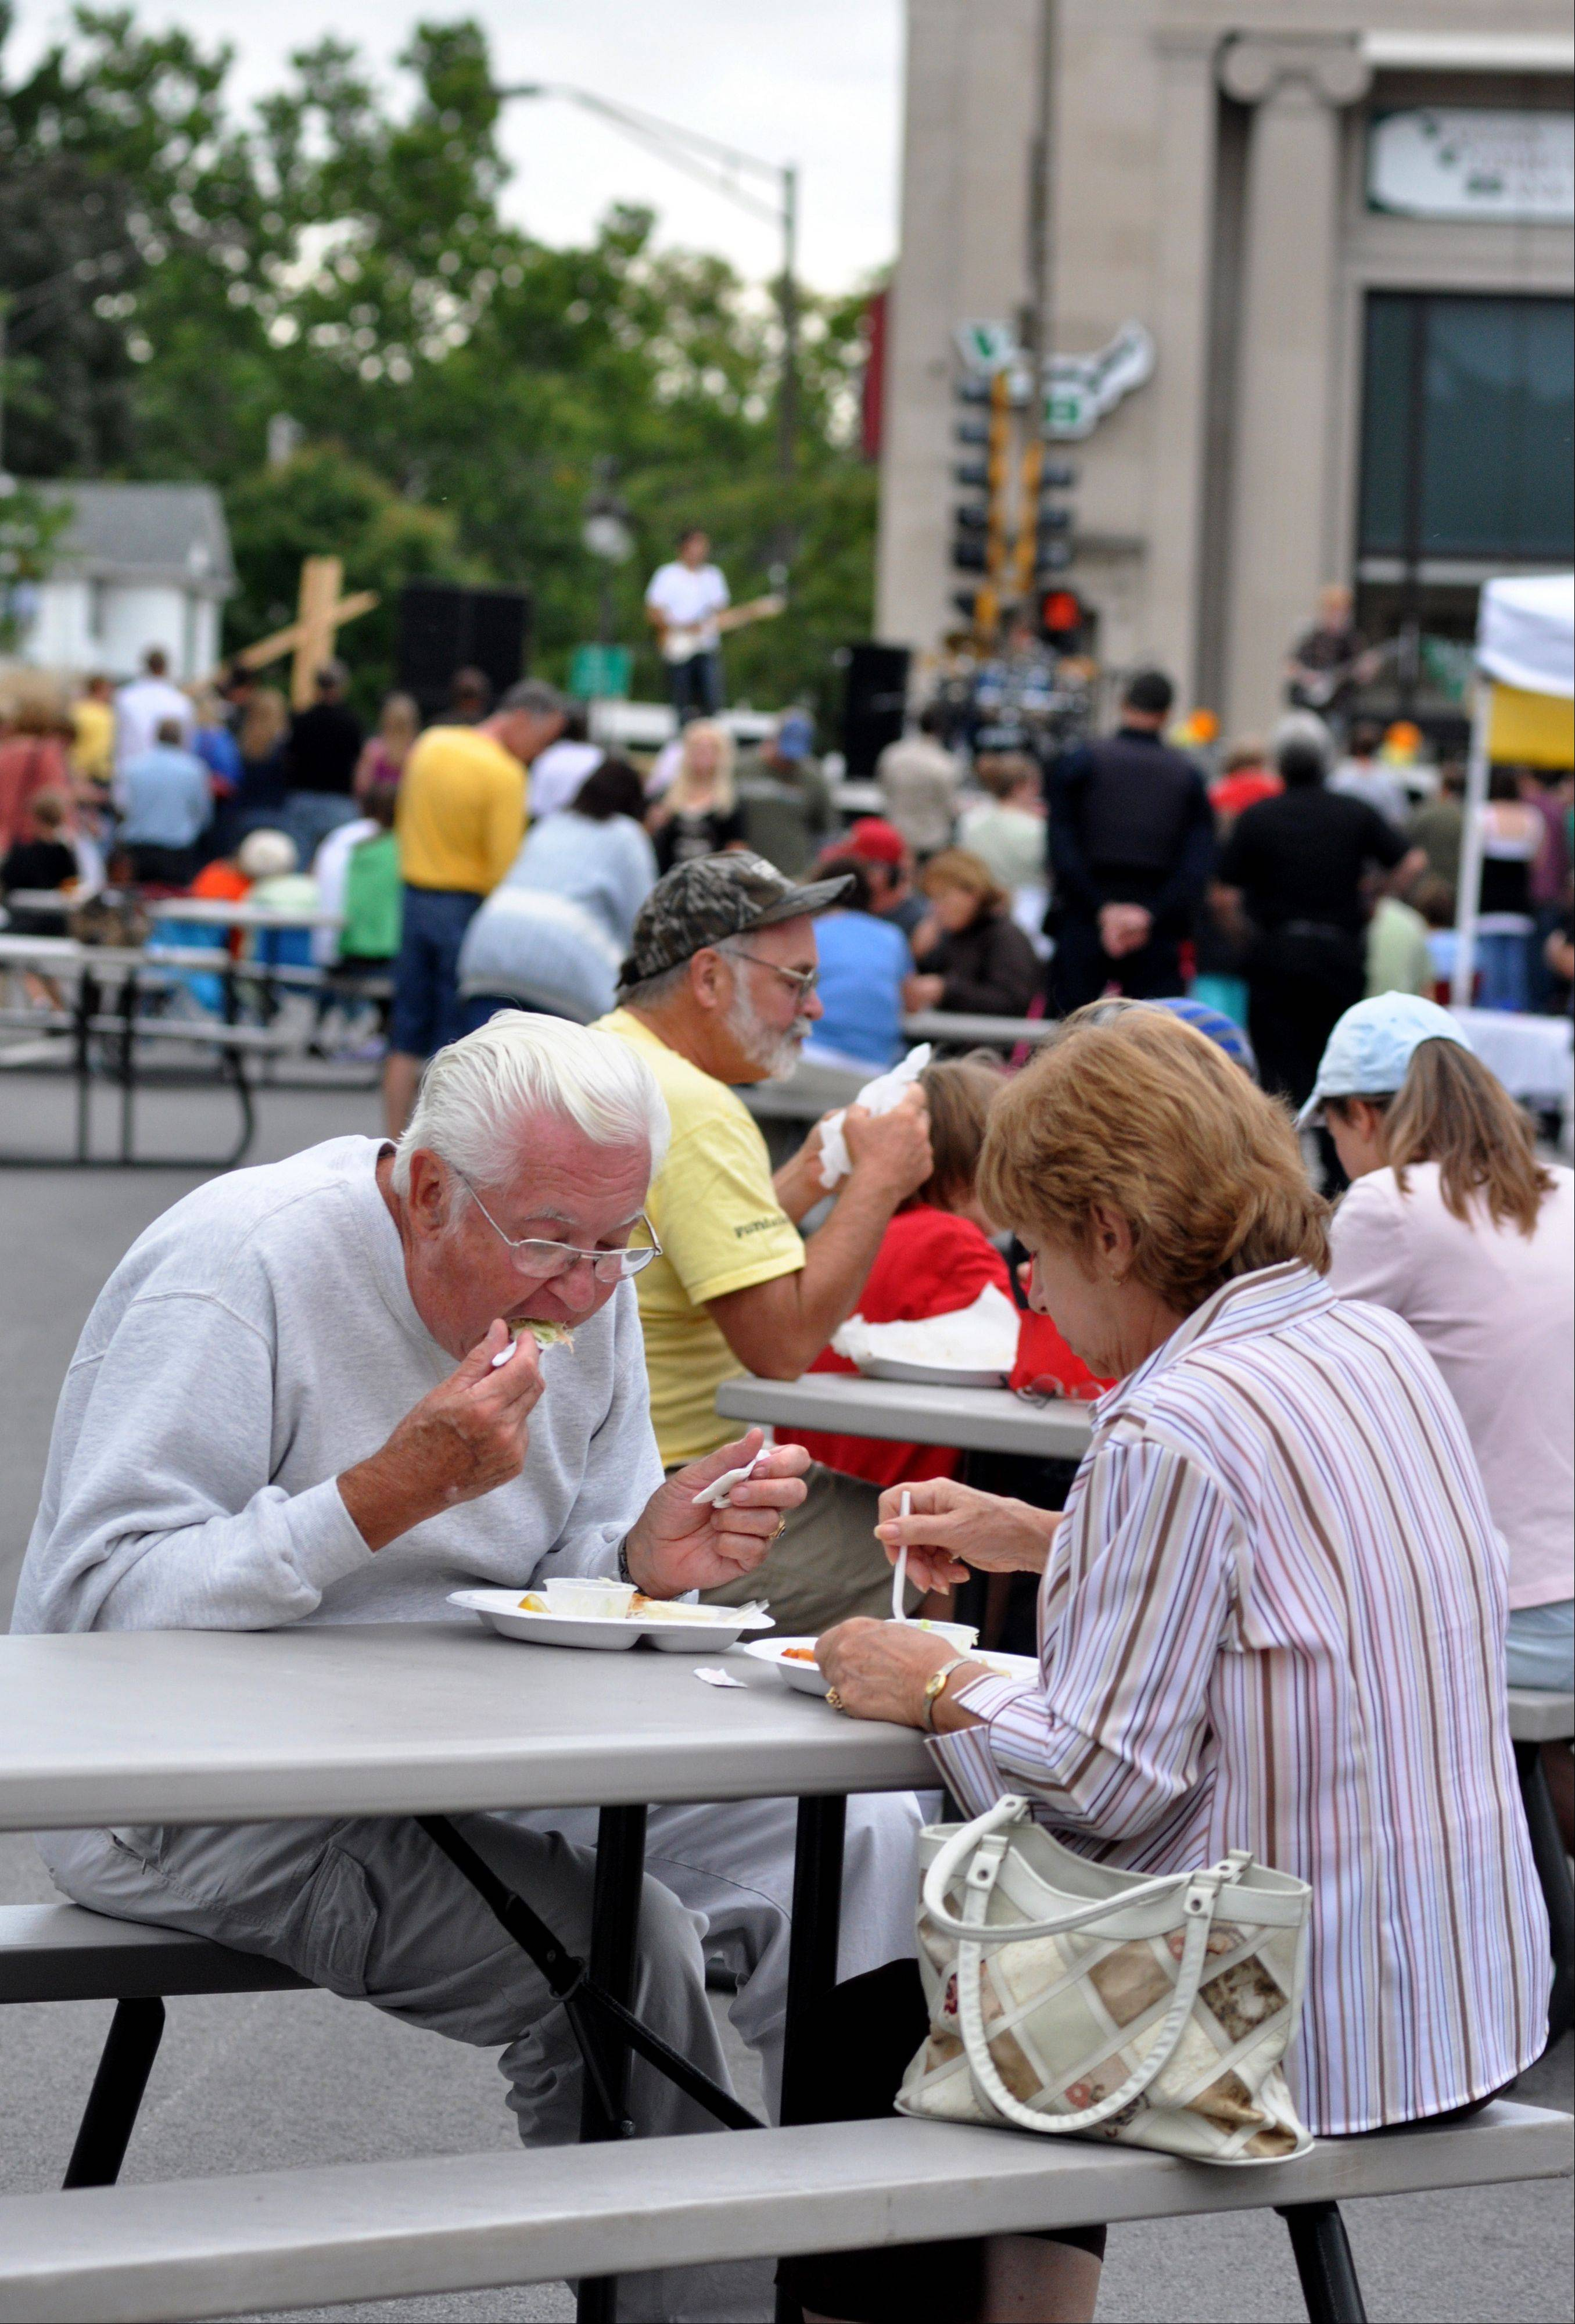 Rich Franden and Diane Garland from Batavia feast at last year's Downtown Batavia Block Party. This year's event, set for Sunday, will feature food from 11 restaurants.